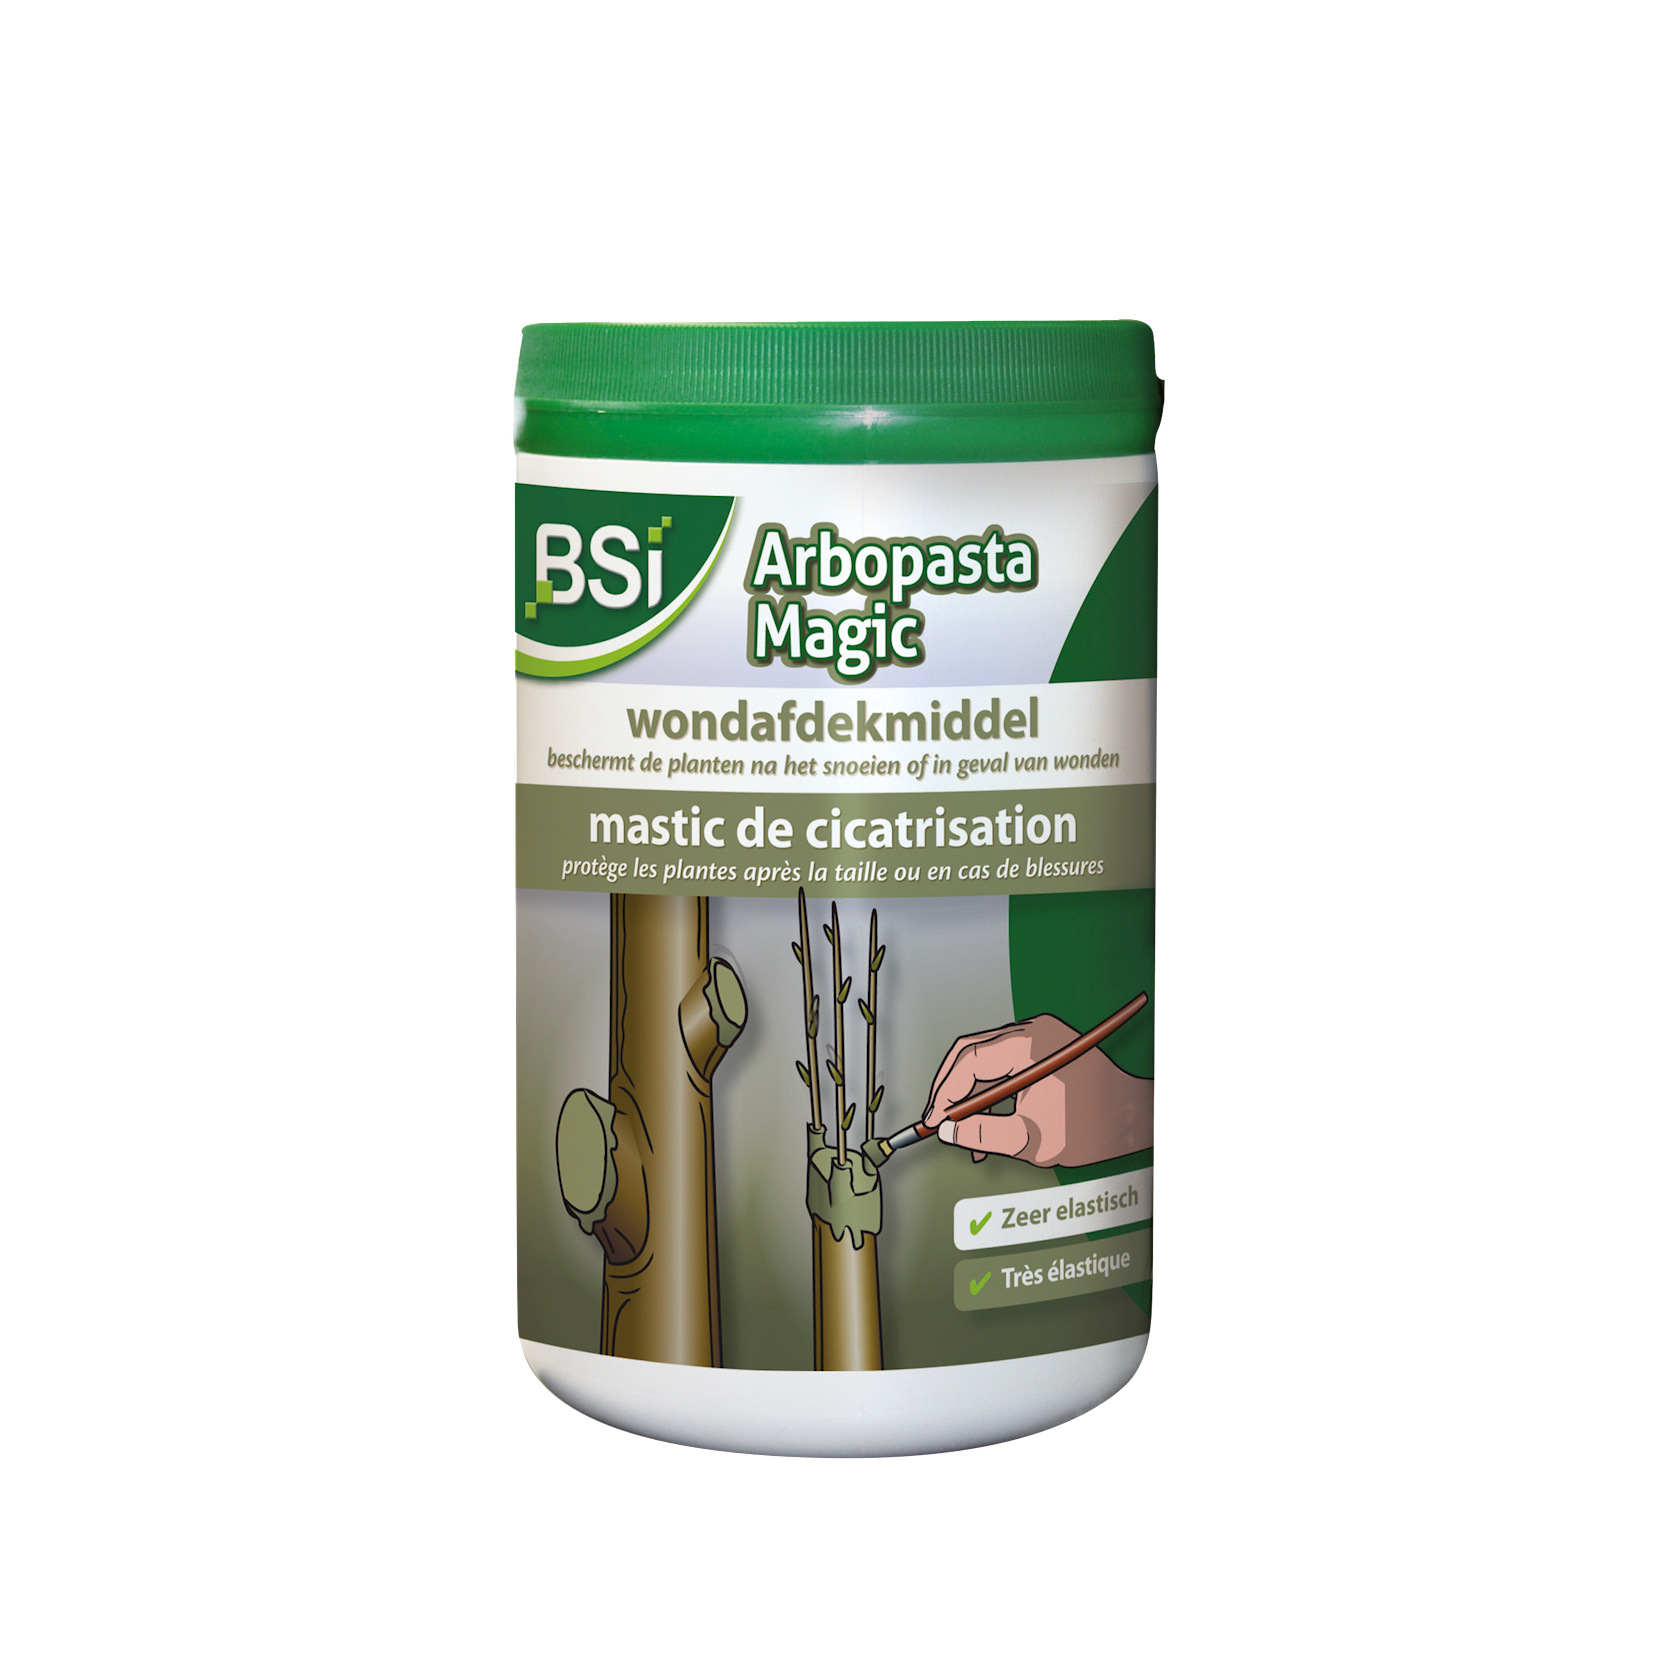 Arbopasta magic 250gr: wondafdekmiddel voor bomen en planten